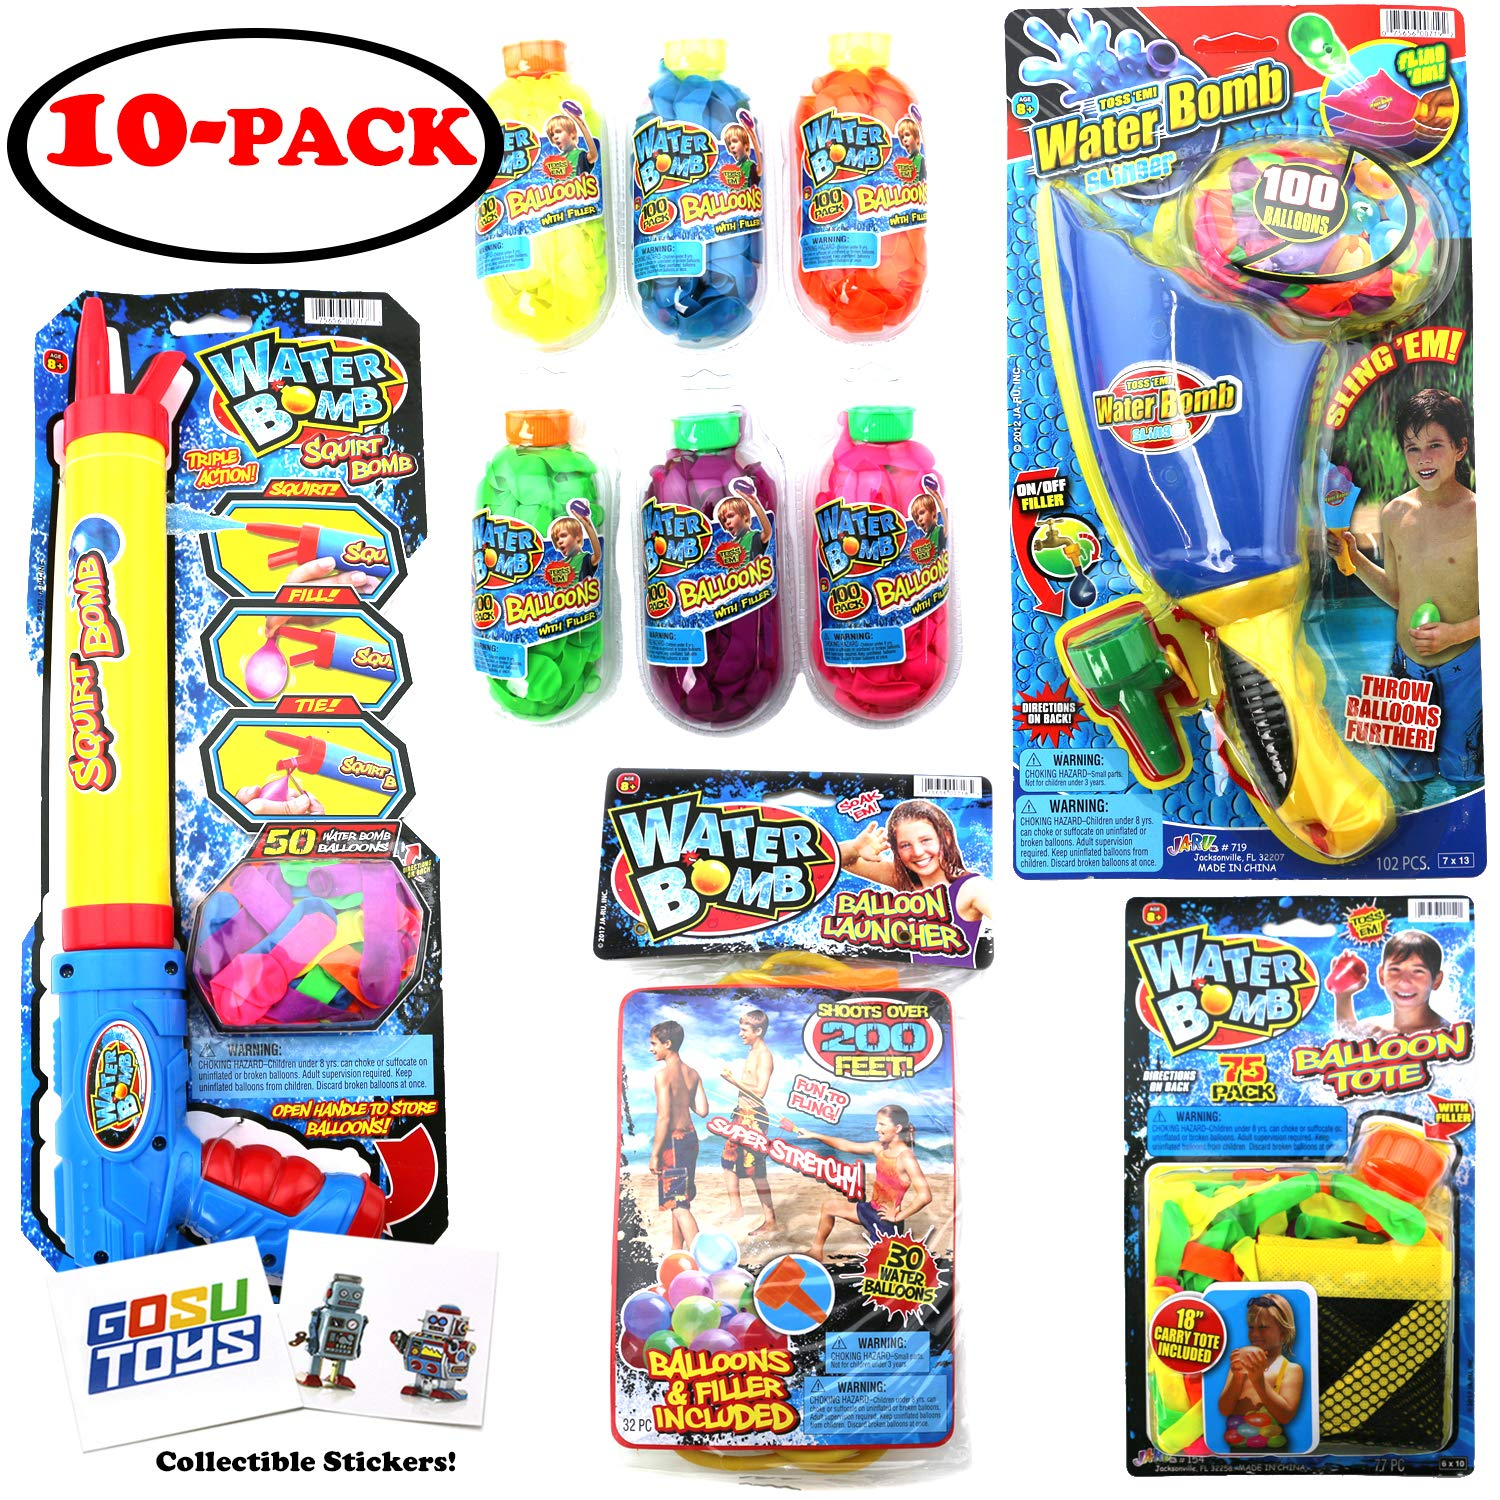 Ultimate 10 Piece Water Balloon Set 855 Water Balloons, Slinger, Carry Tote, Refill Gun, Water Balloon laucher Slingshot Water Balloon Party with 2 GosuToys Stickers by Gosu Toys